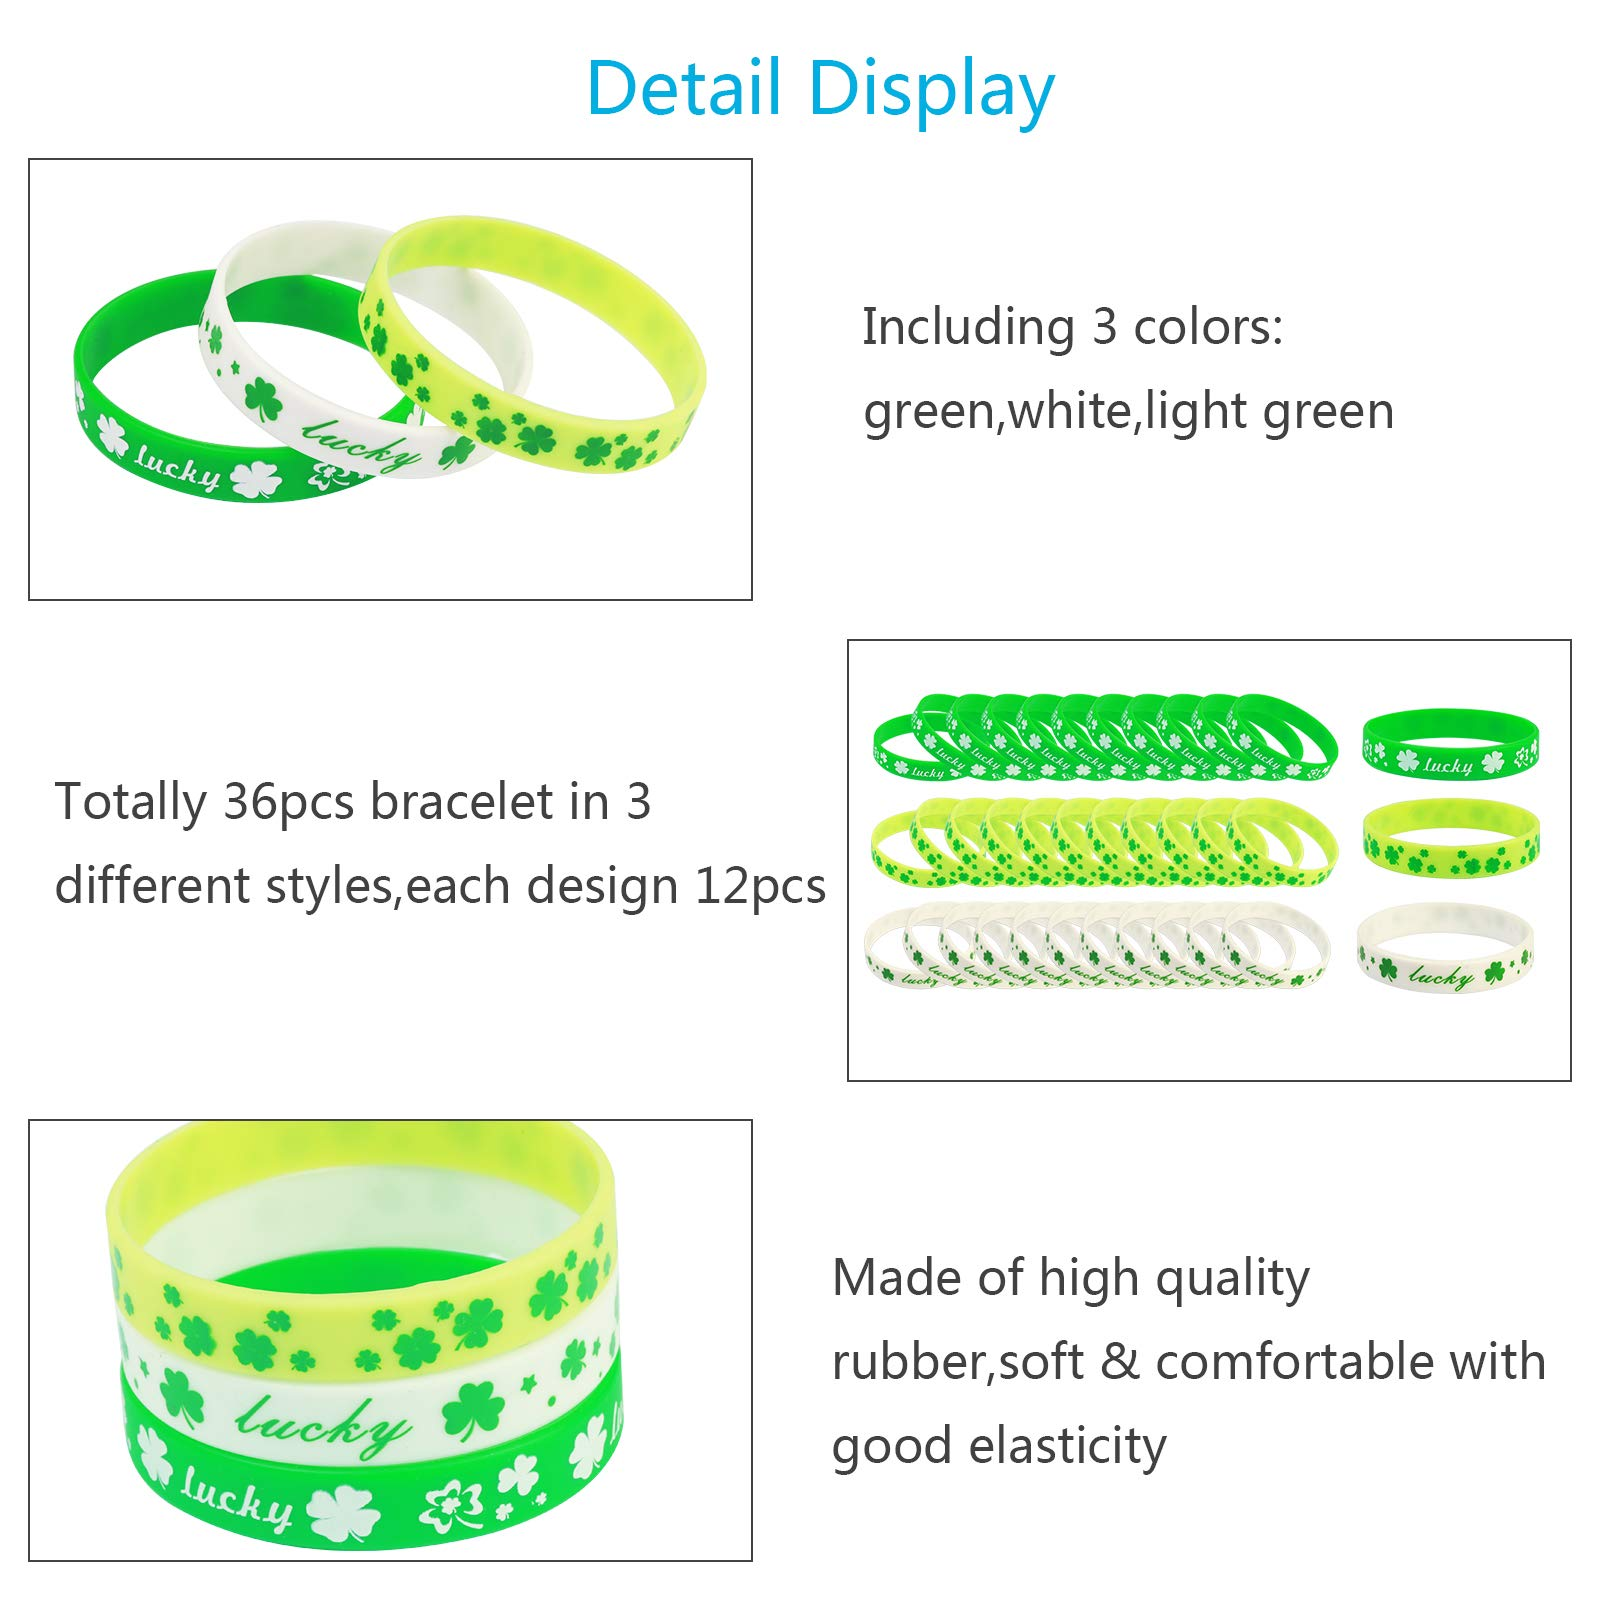 ZERHOK St Patrick\'s Day Shamrock Bracelets, 36pcs Clover Wristbands Silicone Bracelet Sets in 3 for Irish Day Party Favor Supplies Decorations